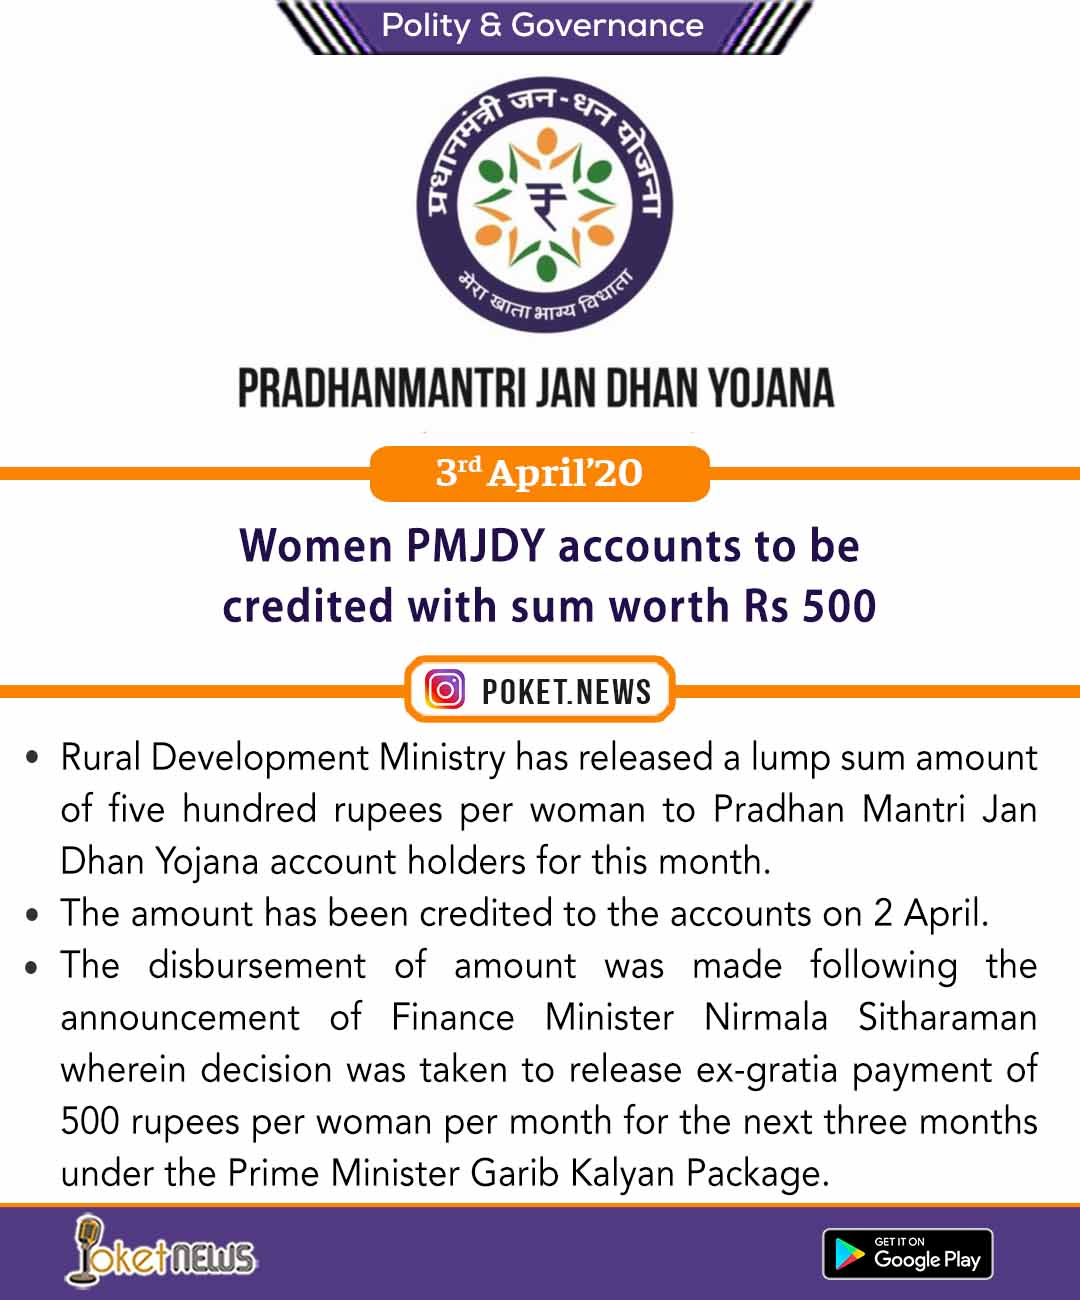 Women PMJDY accounts to be credited with sum worth Rs 500